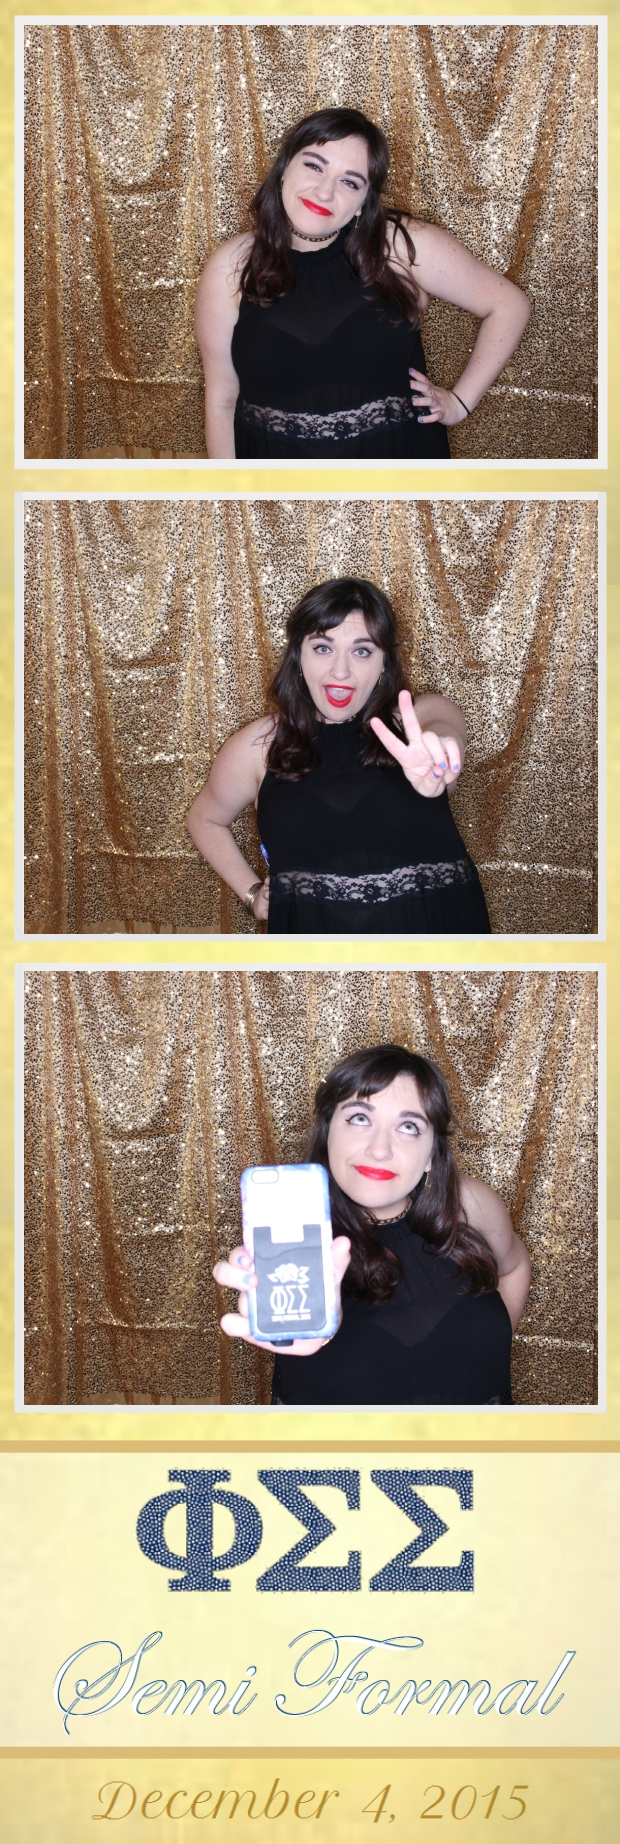 Guest House Events Photo Booth Phi Sigma Sigma Semi Formal (7).jpg